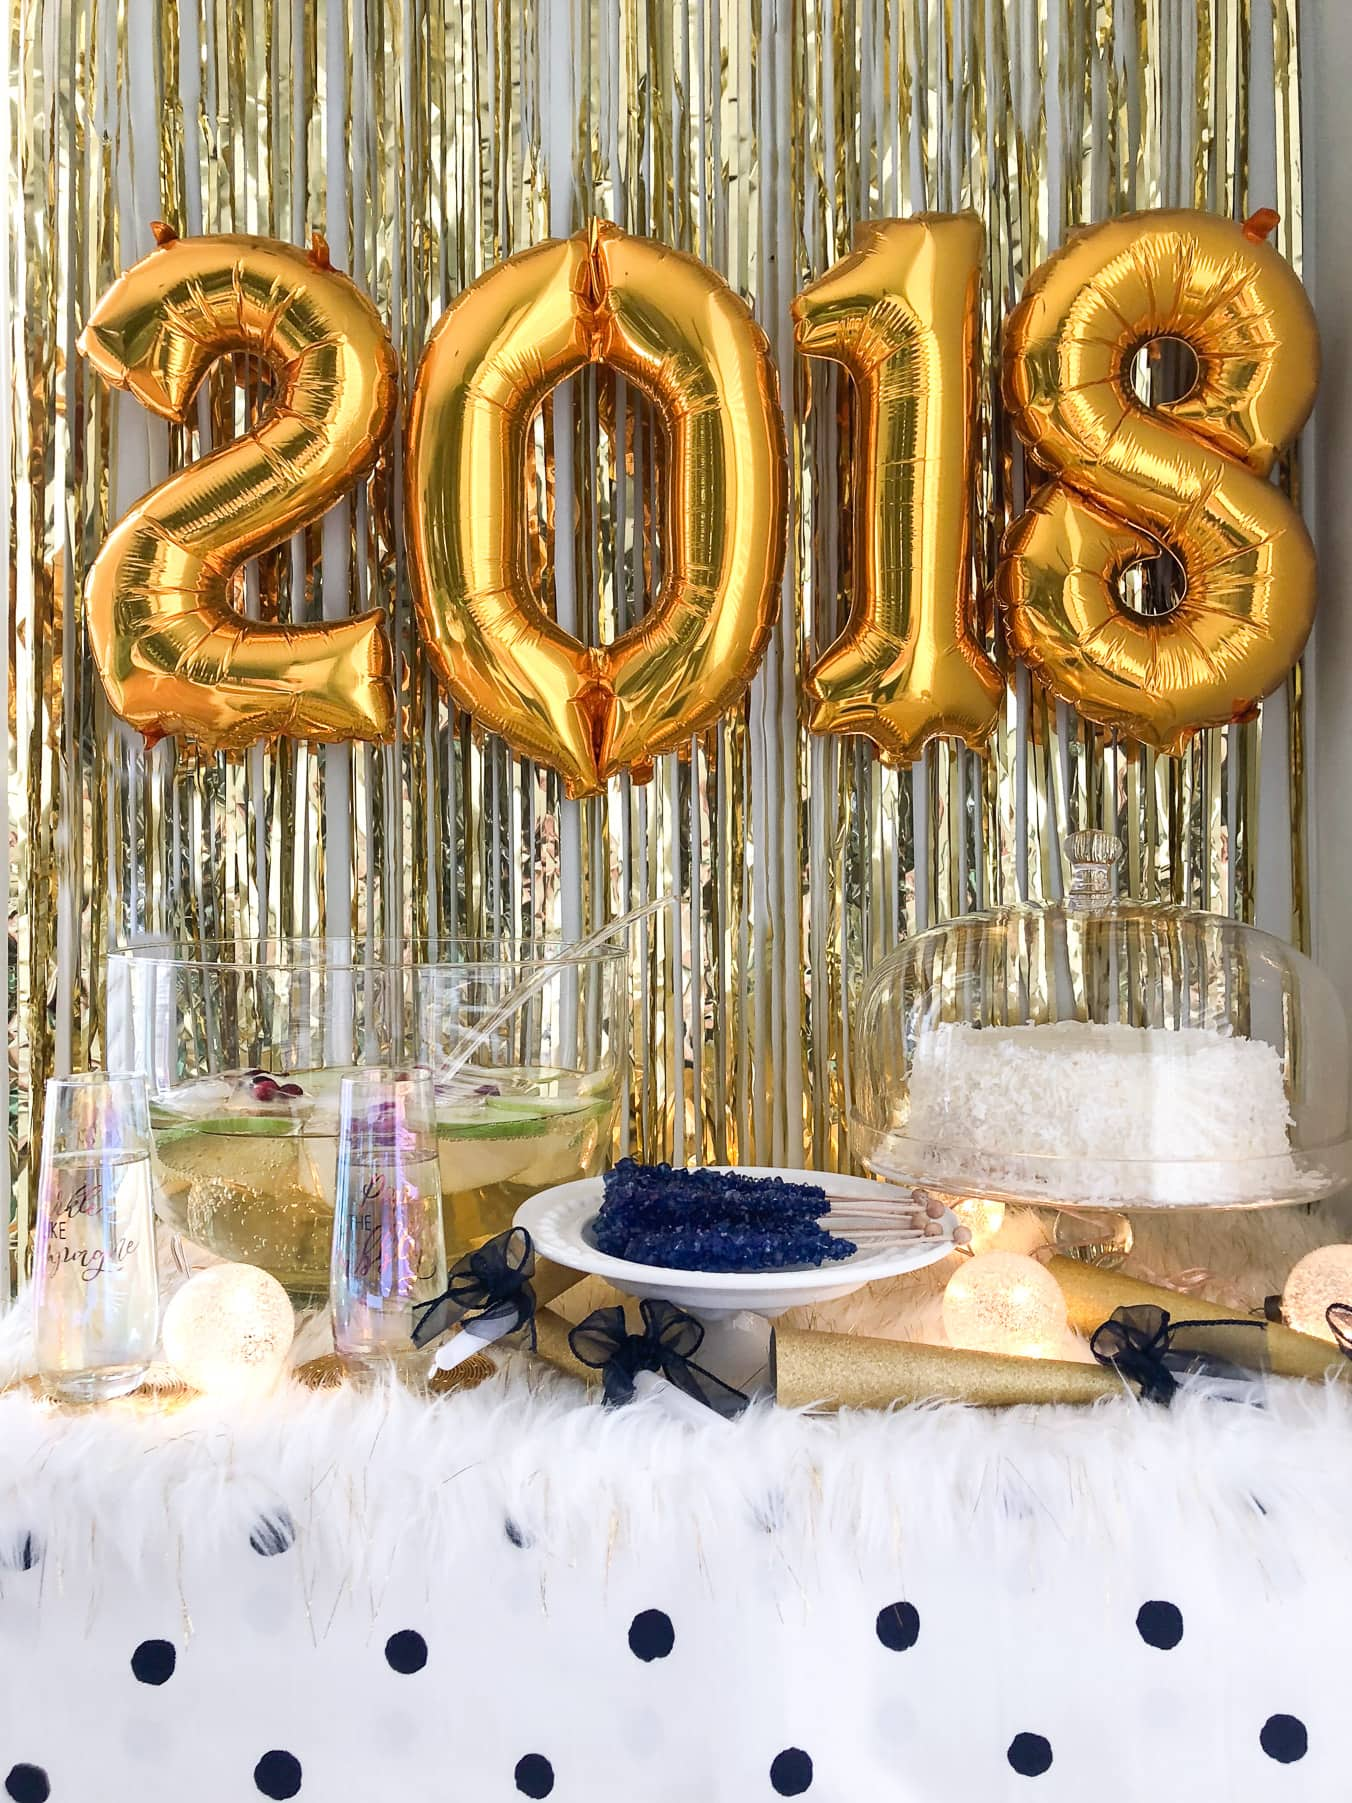 Happy New Year! 2018 New Years Eve Party Ideas